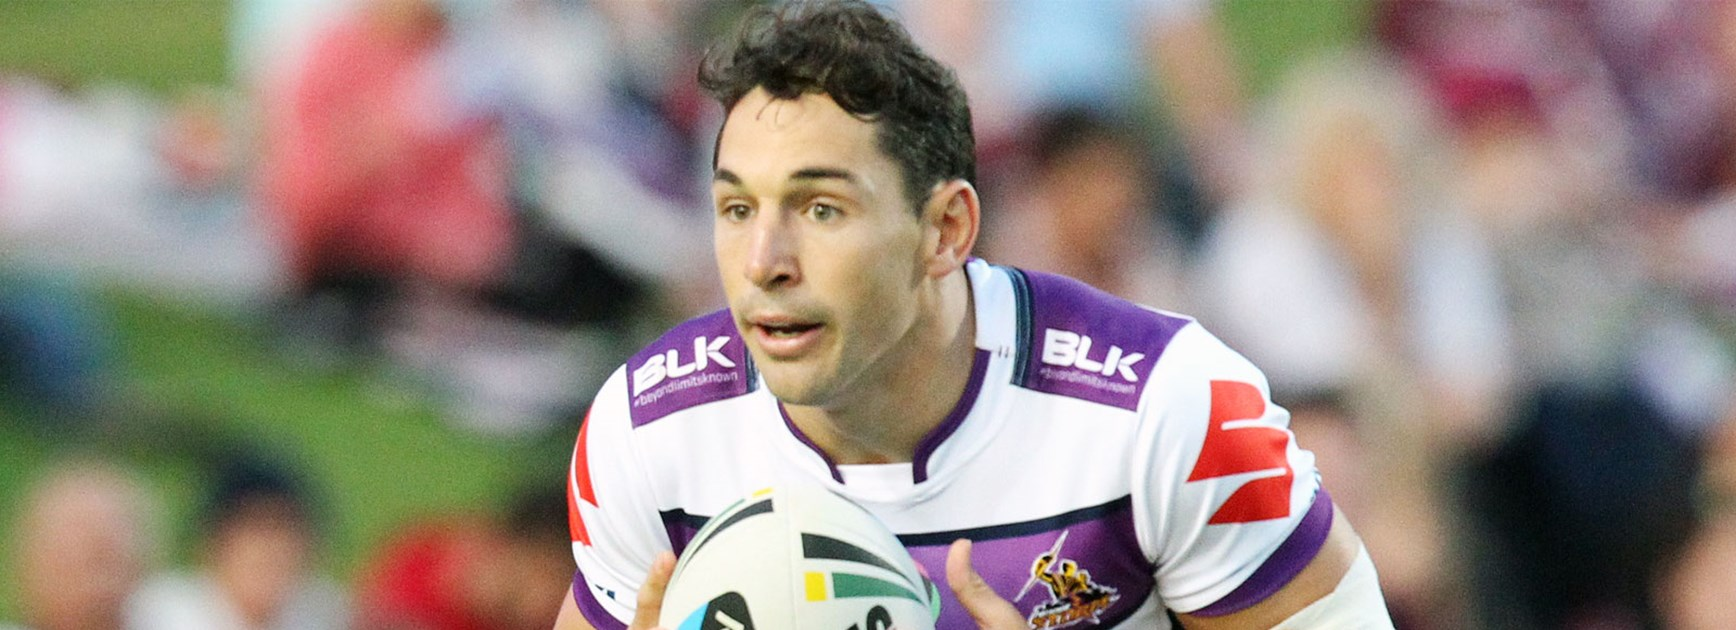 Billy Slater in action during Melbourne's Round 2 loss to Manly at Brookvale Oval.